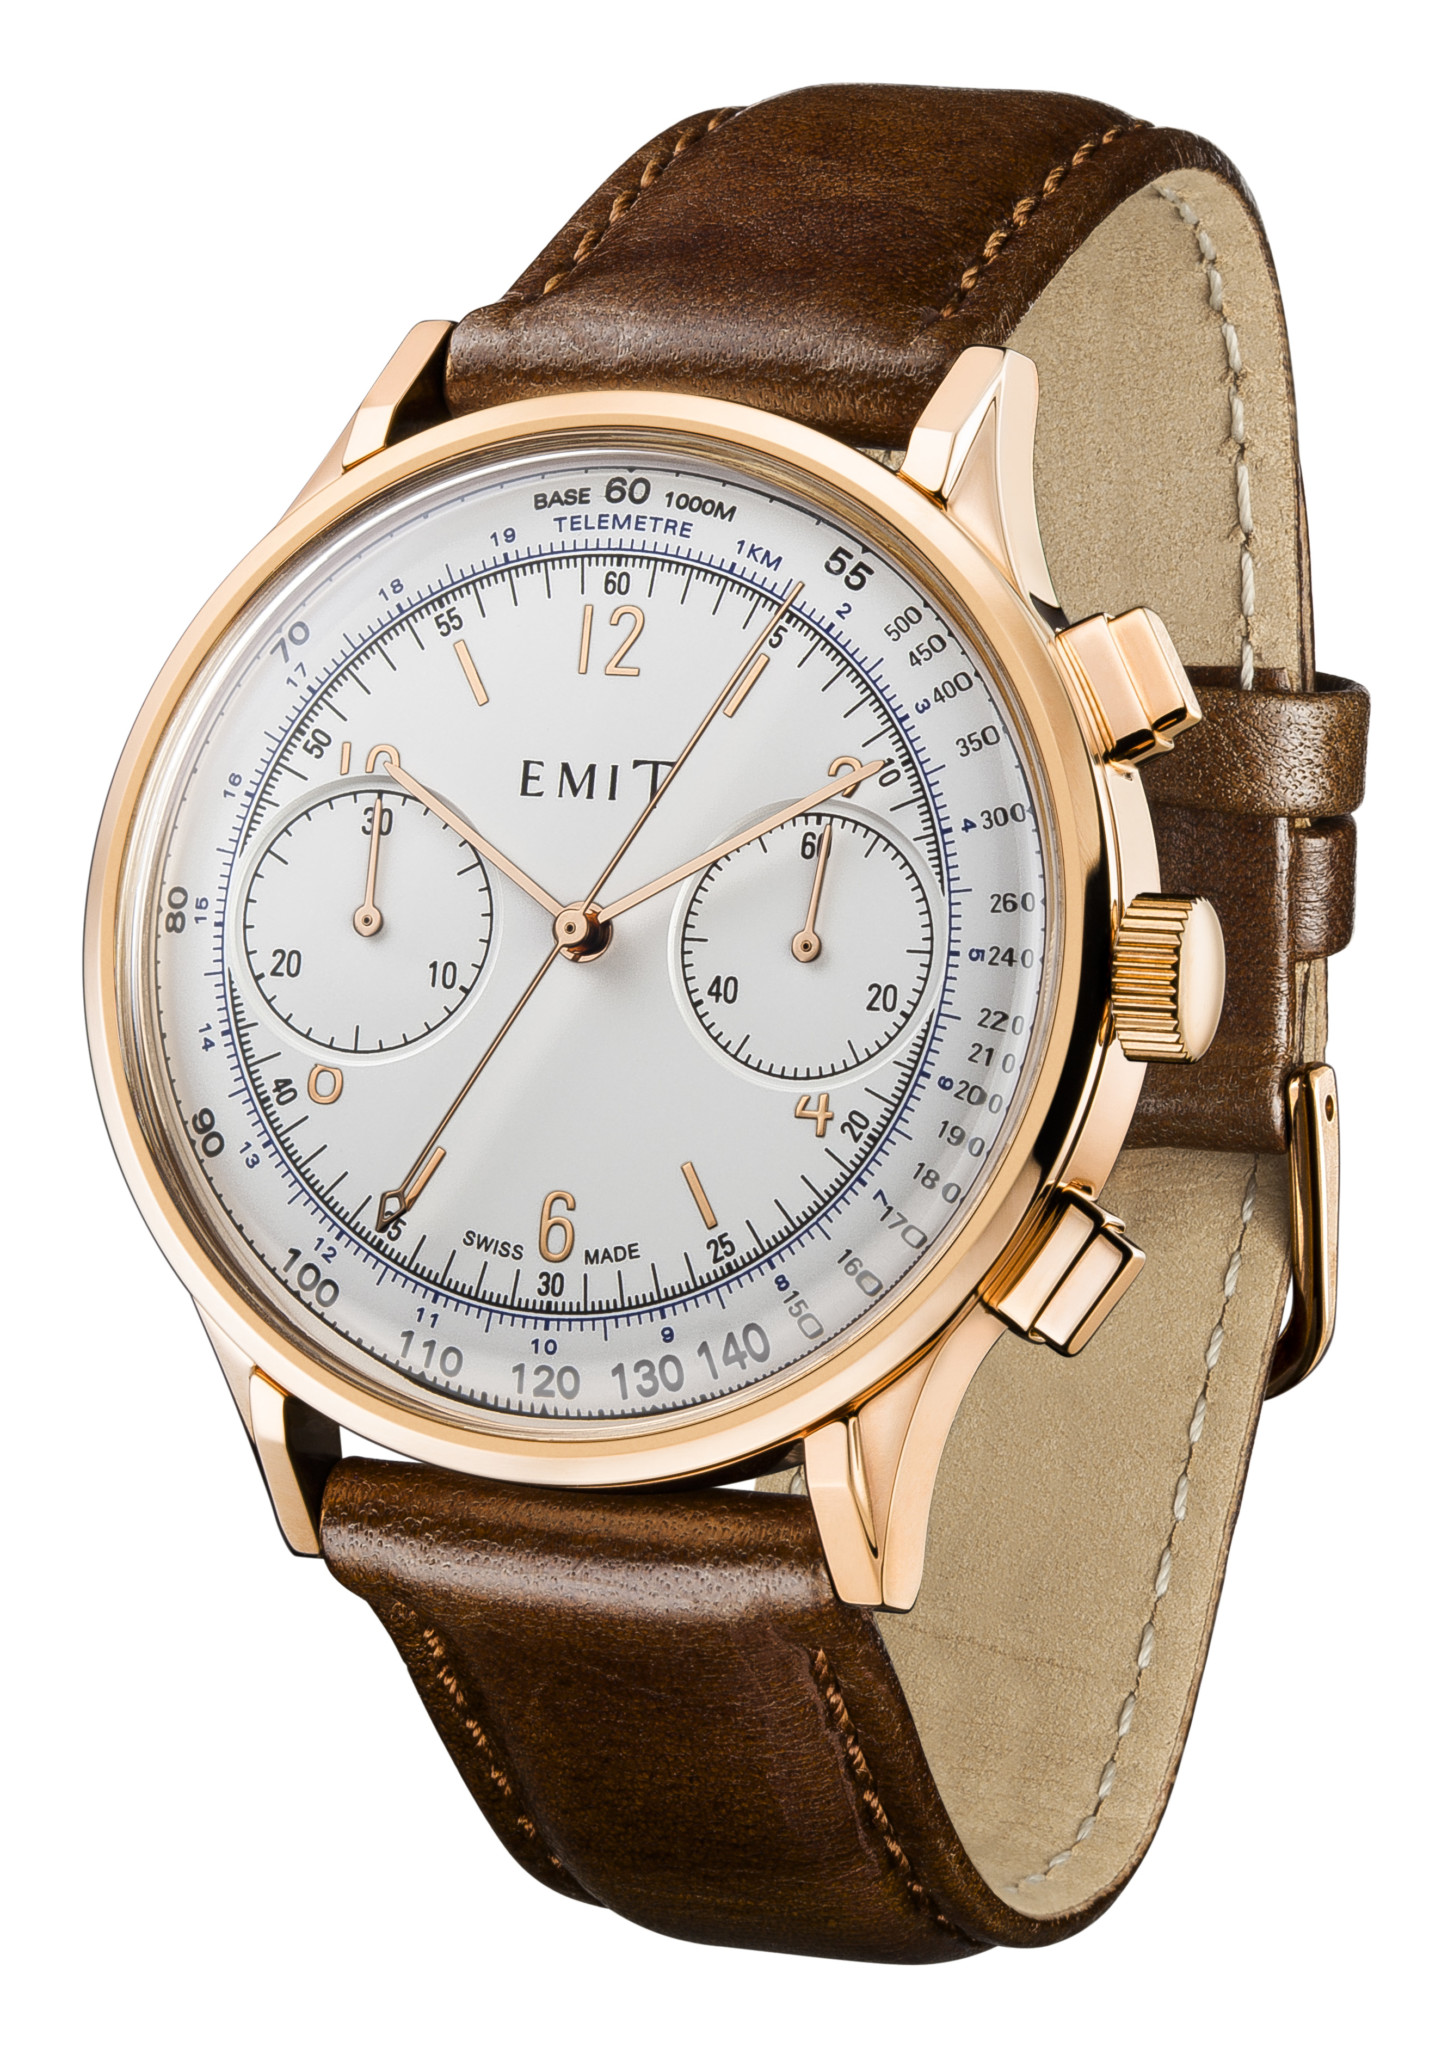 The tachymeter bezel, shown here on the Swiss-made Emit Chronograph, is one of the key distinguishing features on iconic chronograph watches.